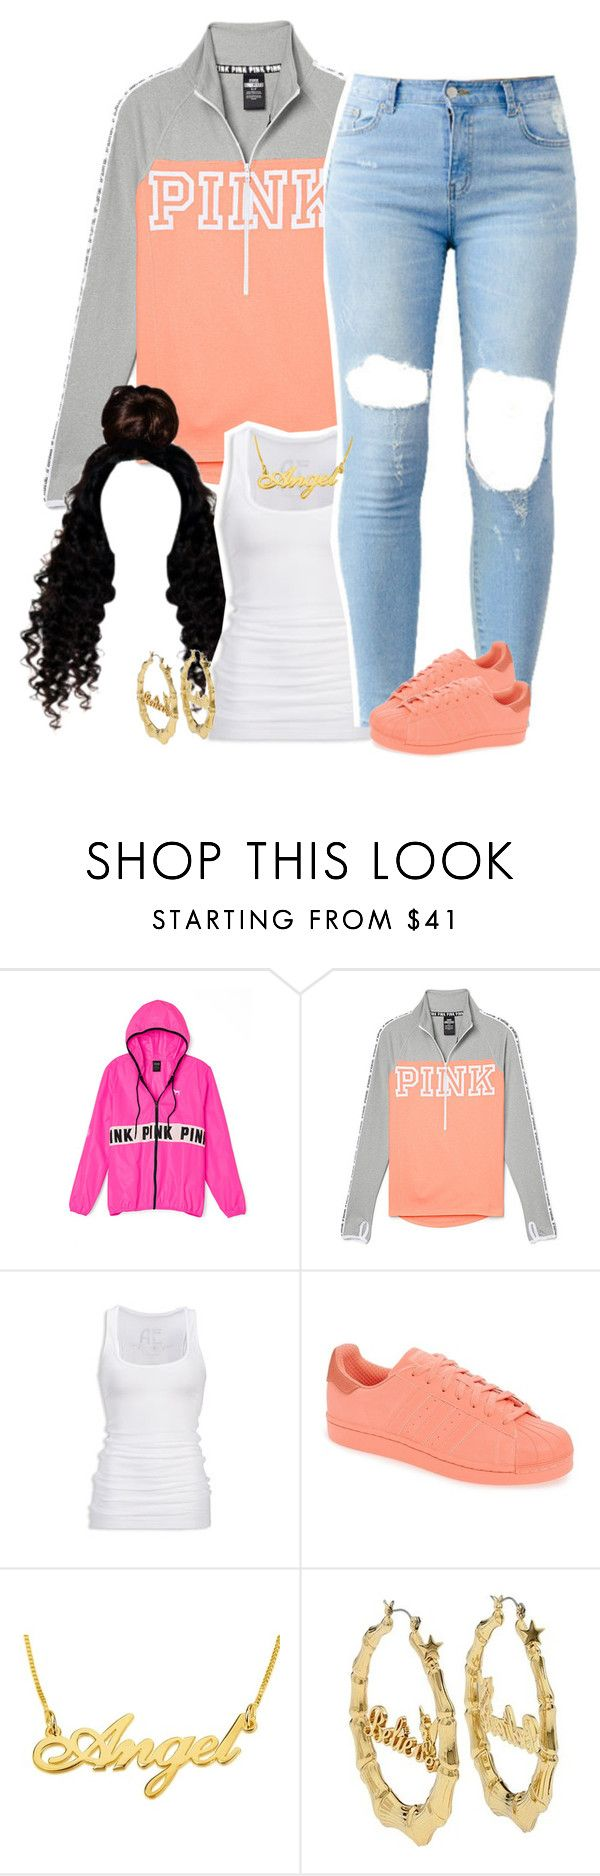 """""""Untitled #1626"""" by lulu-foreva ❤ liked on Polyvore featuring Victoria's Secret PINK, American Eagle Outfitters, adidas and Disney Couture"""